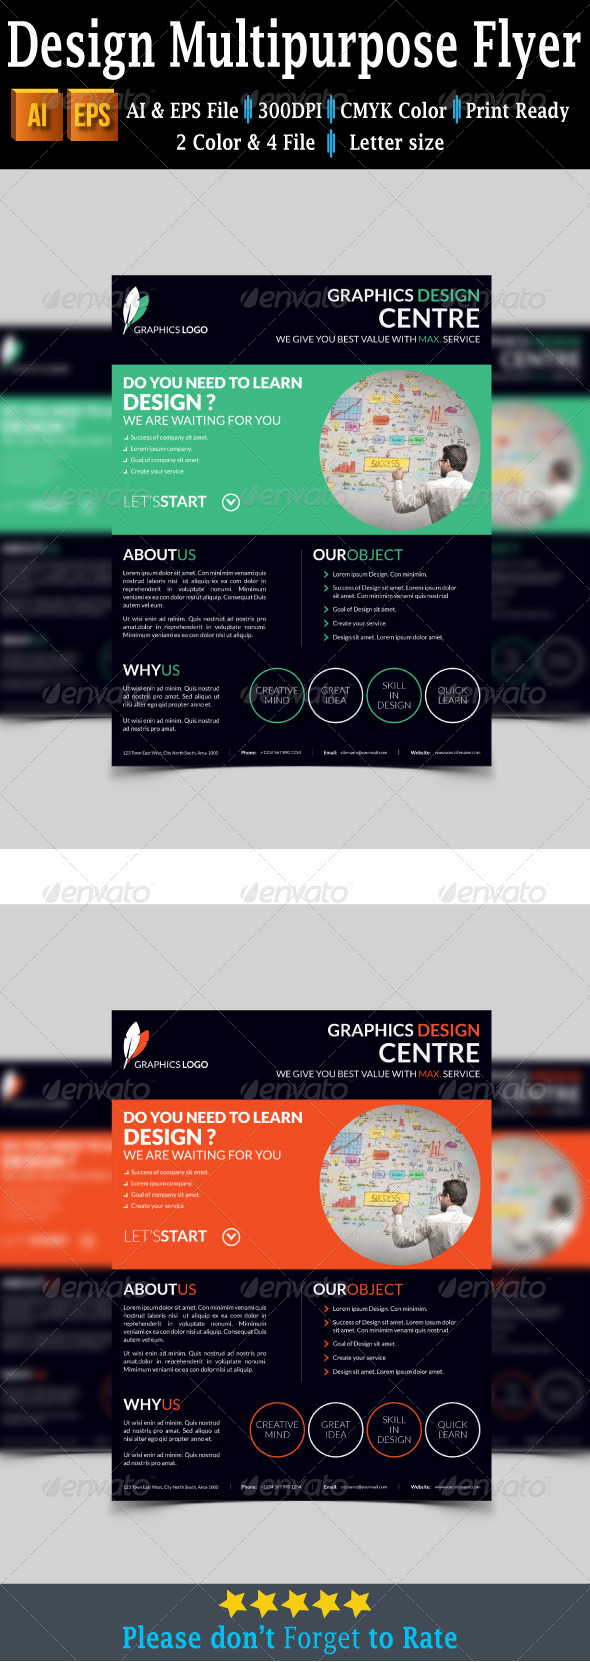 GraphicRiver Design Multipurpose Flyer 7739921